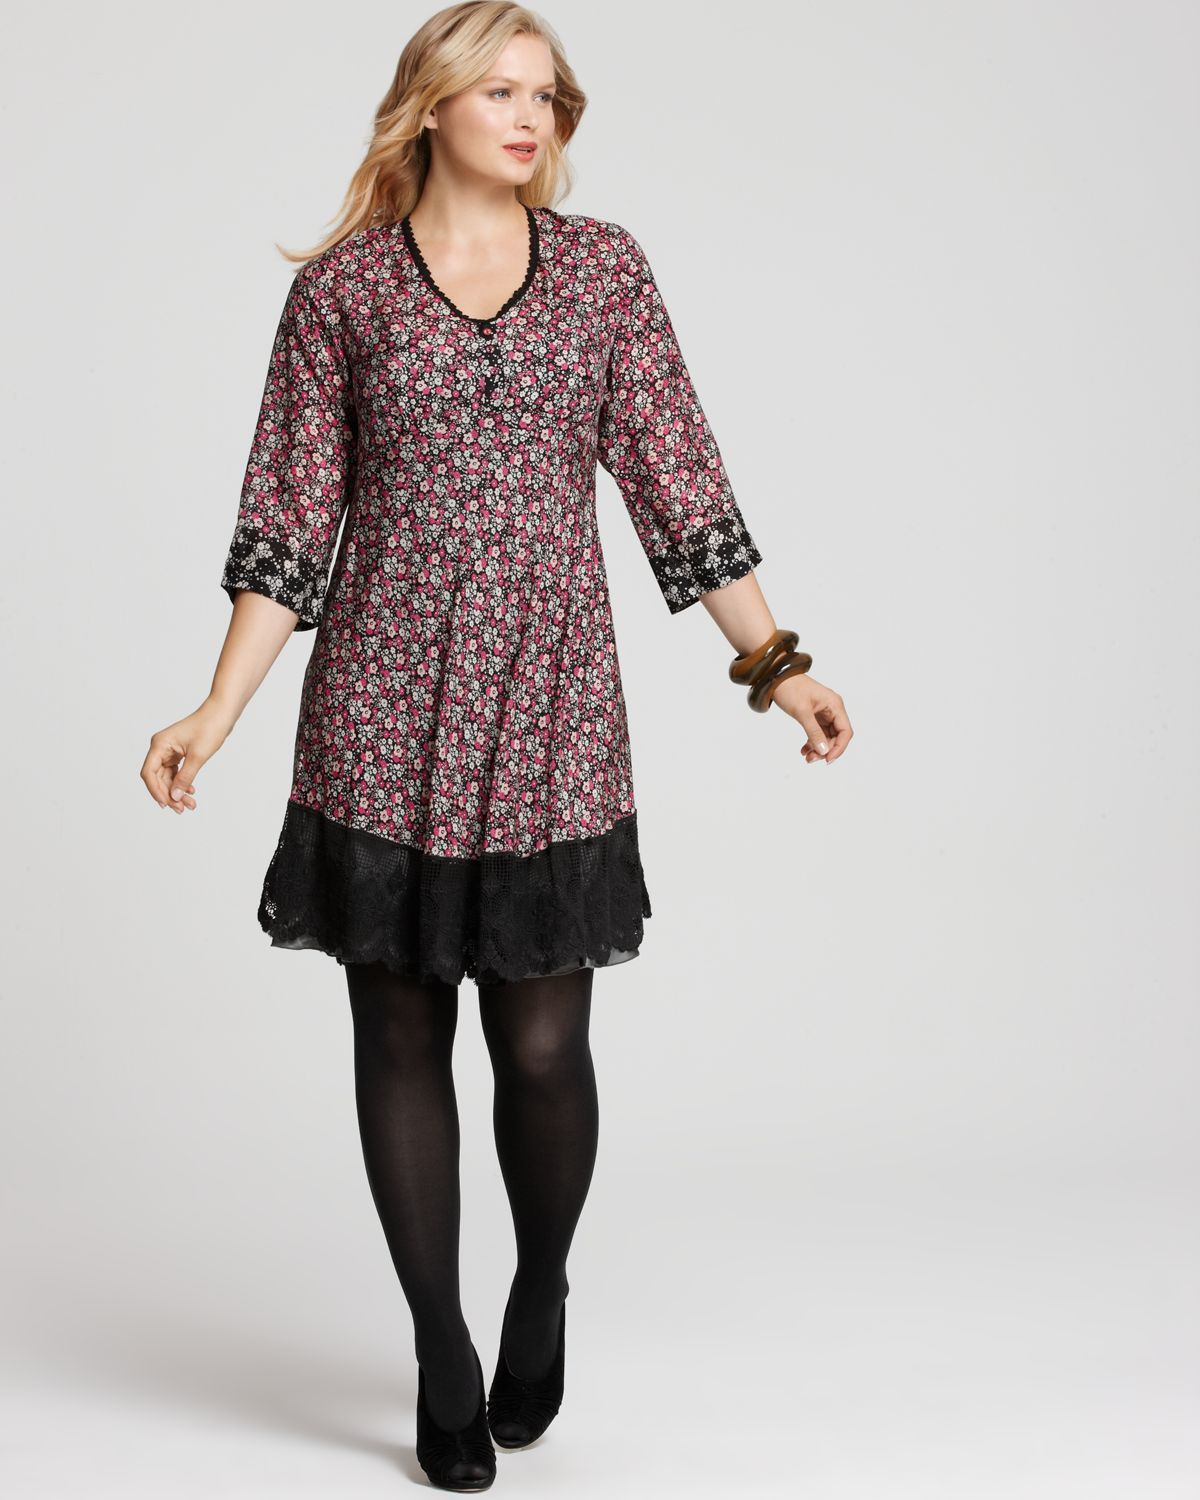 Cute outfit for a plus sized girl!